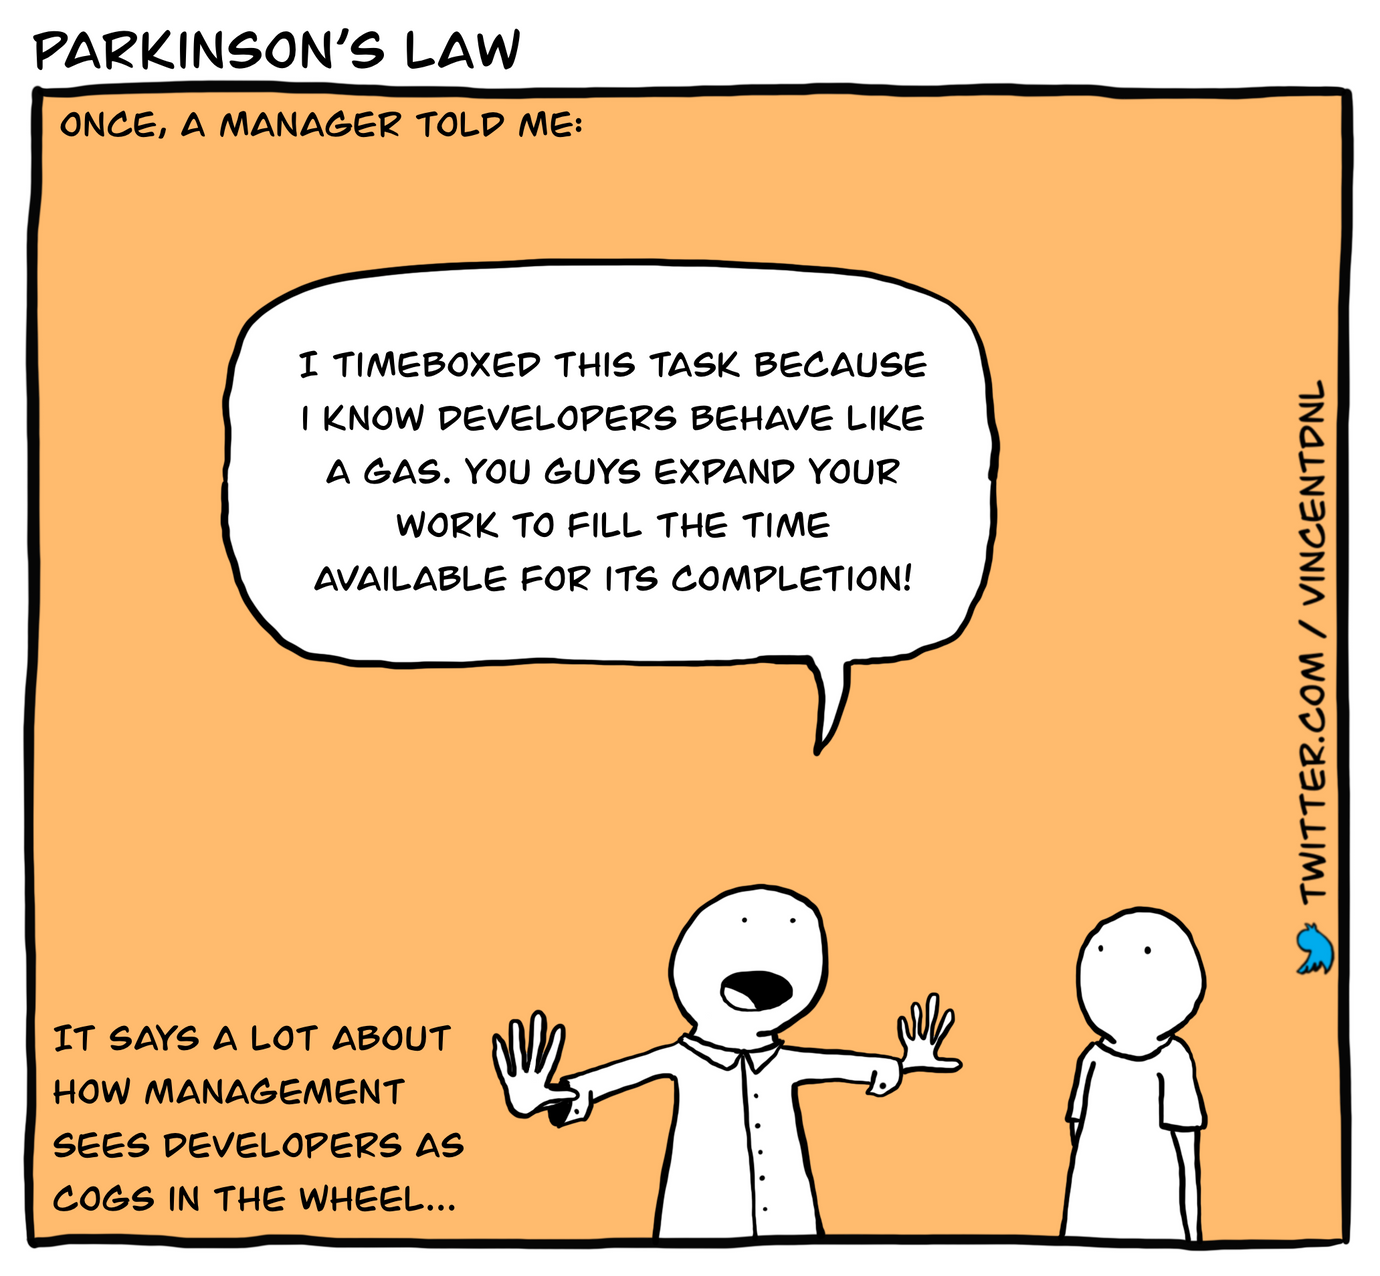 drawing - text: Parkinson's Law | Once, a manager told me: | I timeboxed this task because I know developers behave like a gas. You guys expand your work to fill the time available for its completion! | It says a lot about how management sees developers as cogs in the wheel...